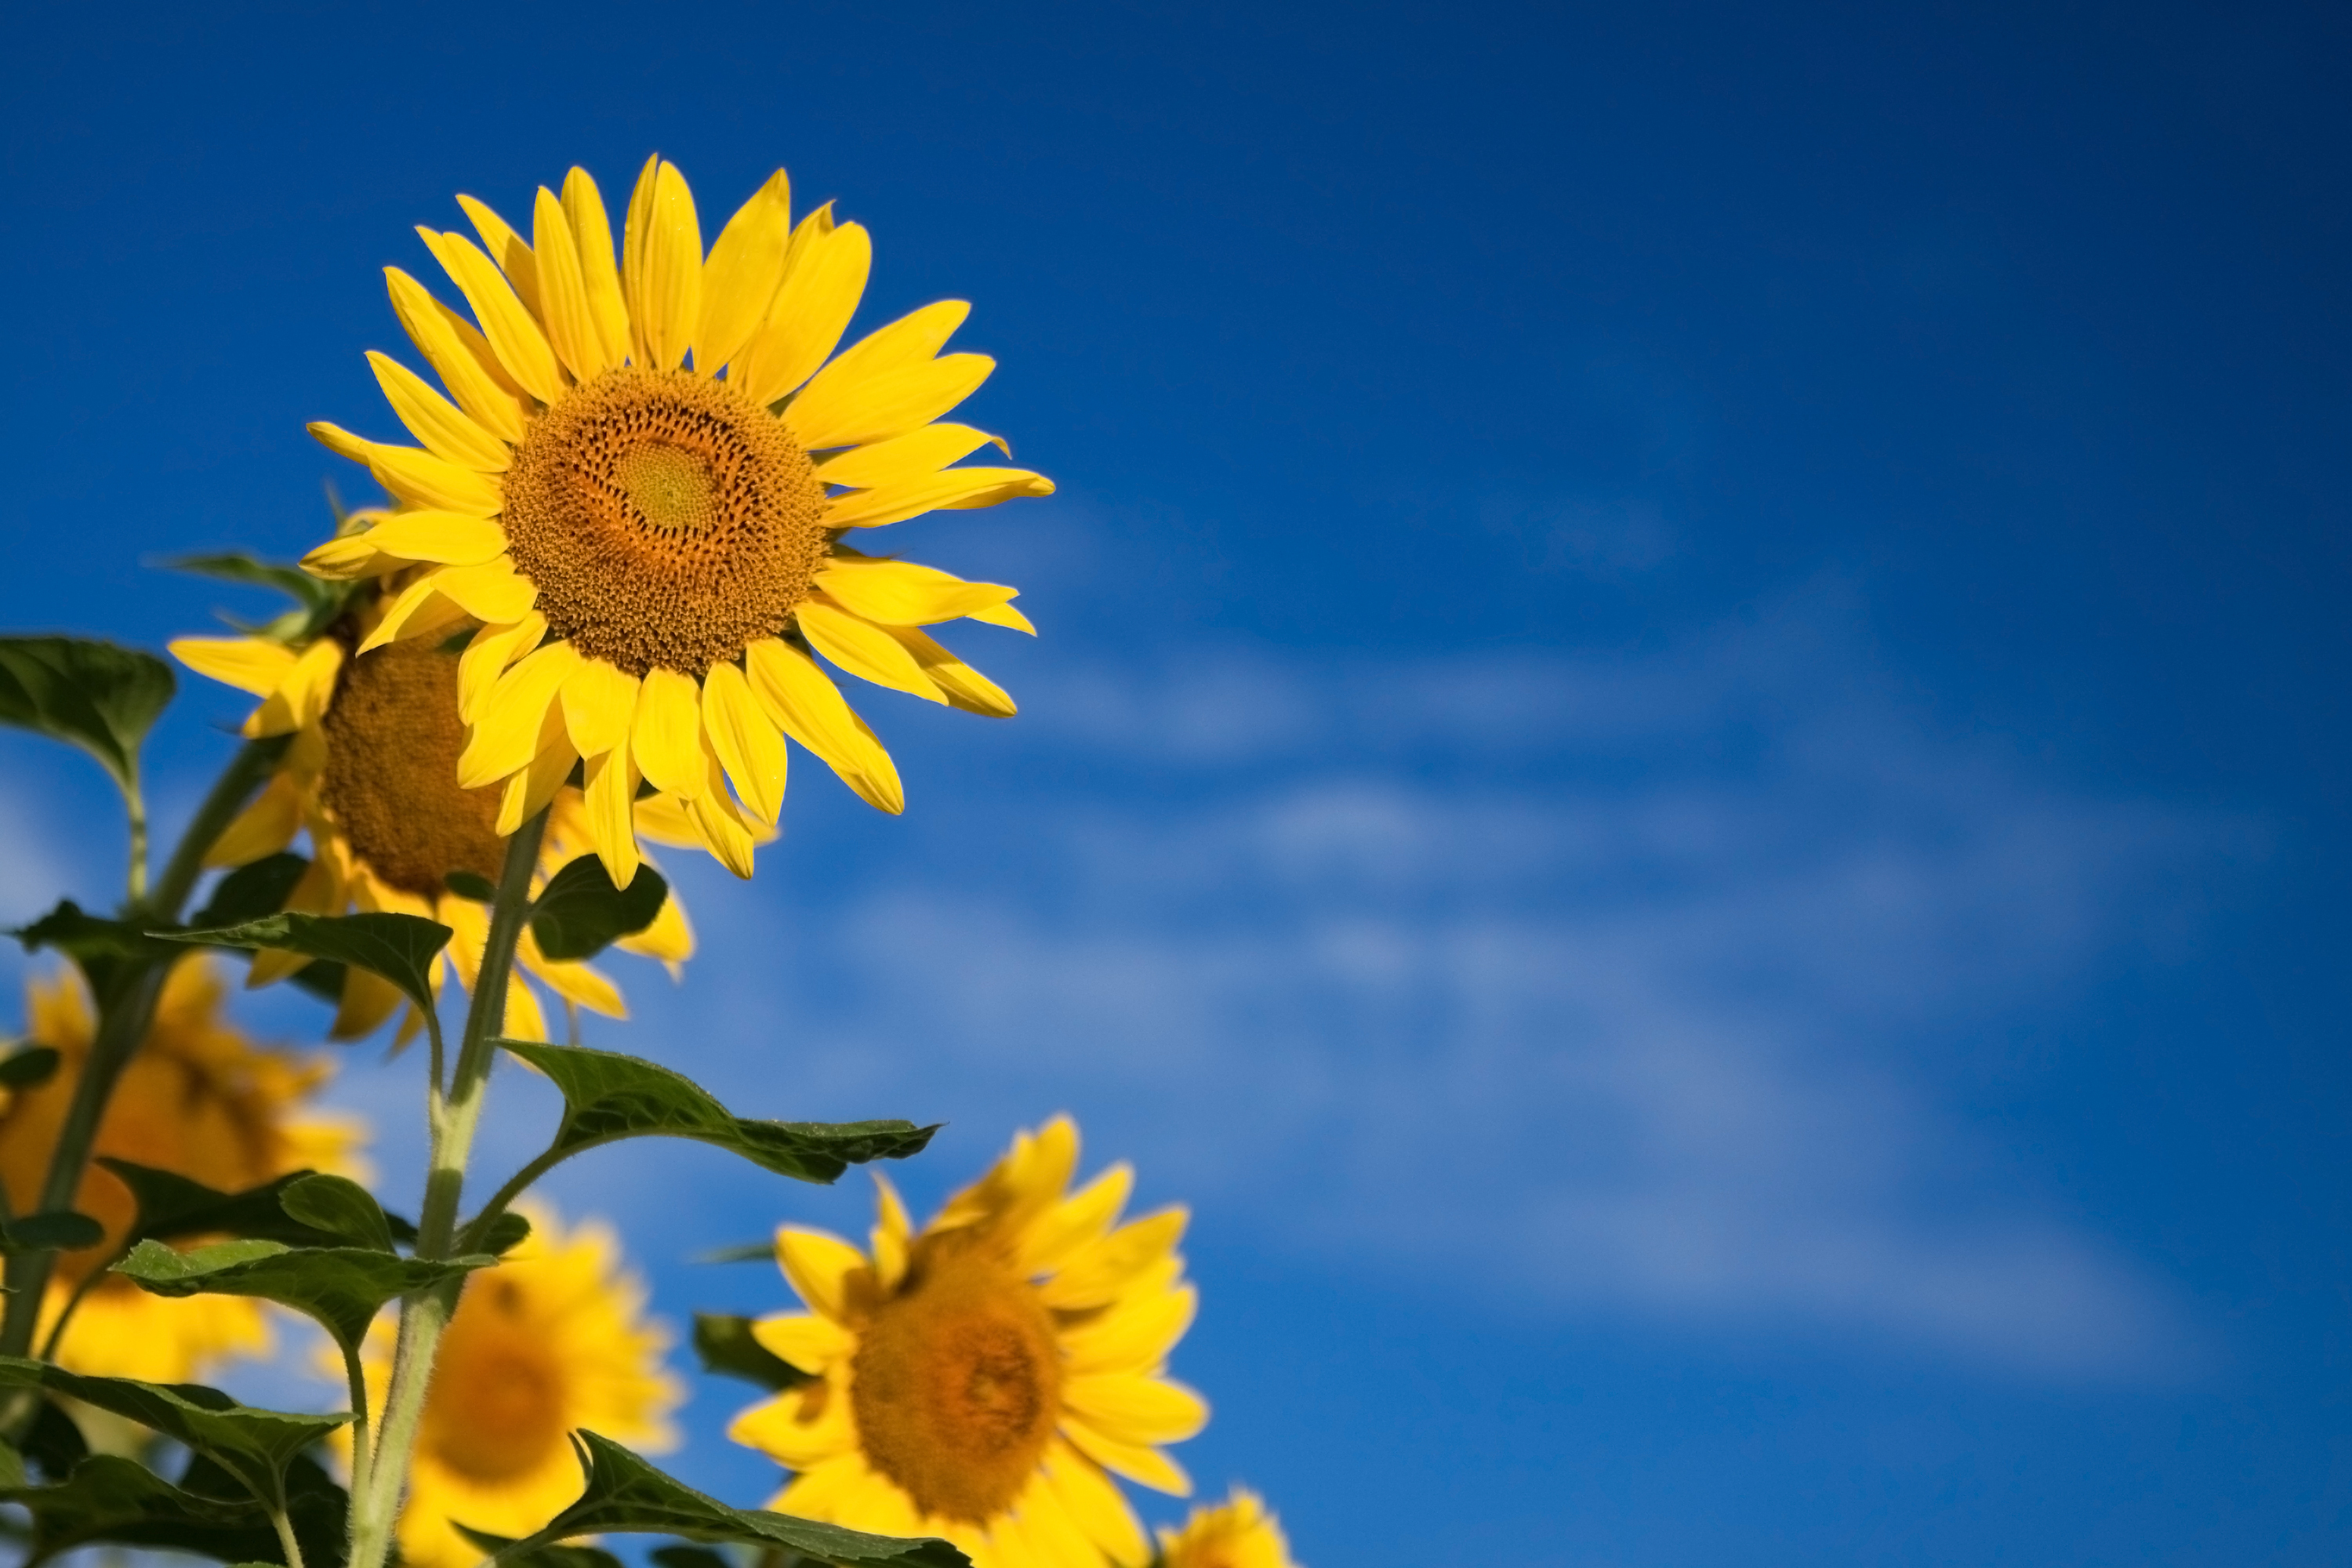 3 Sunflower (Helianthus Annuus)